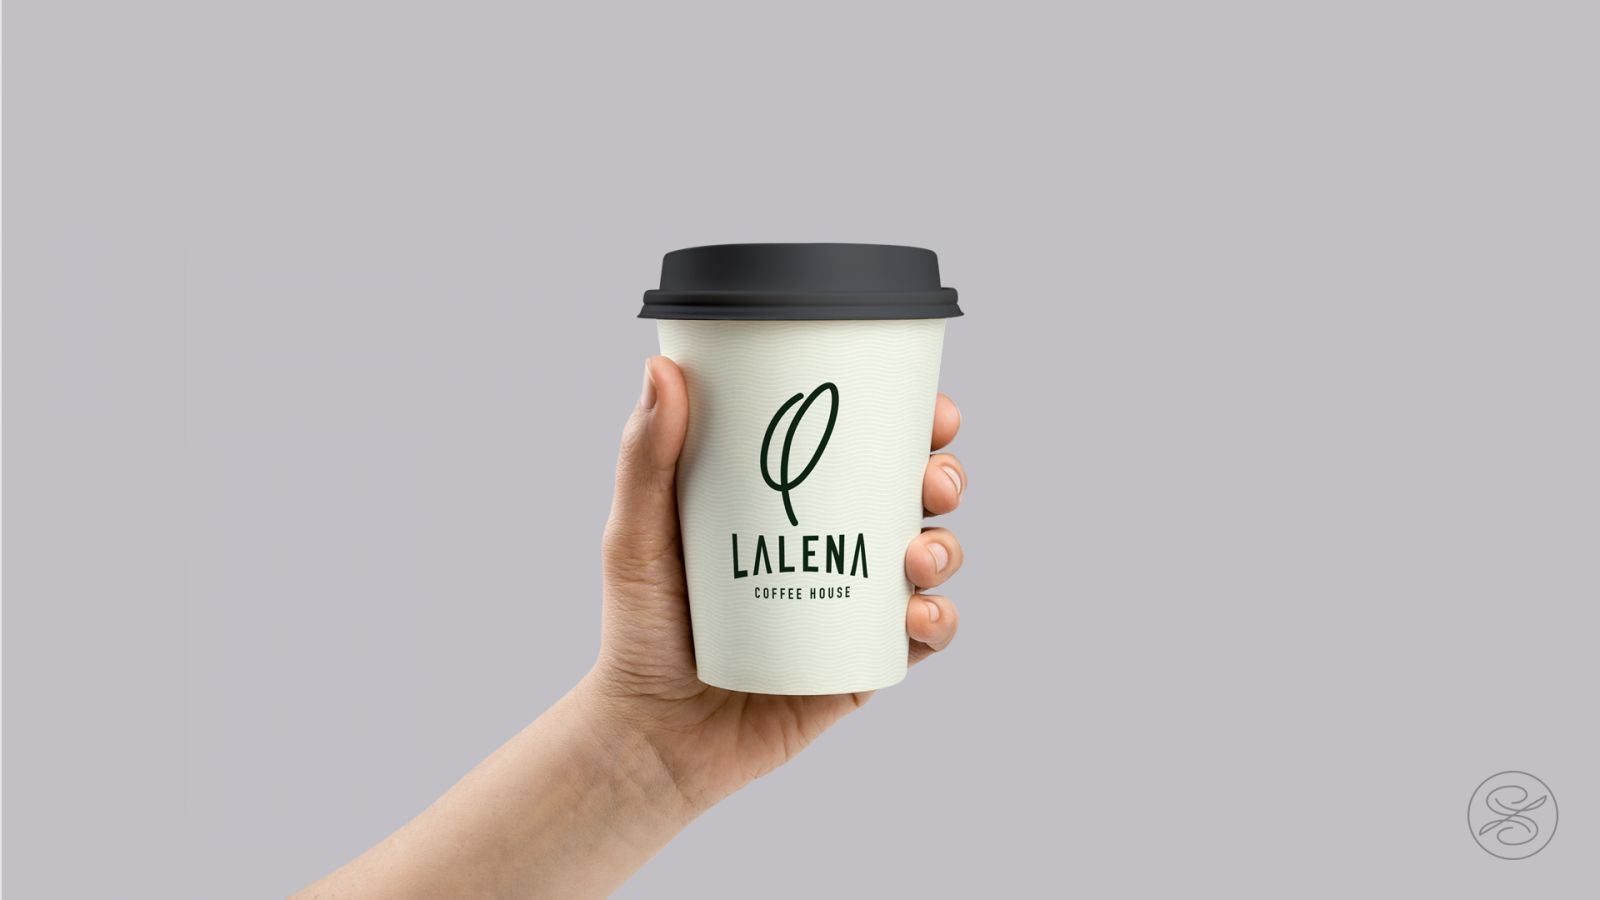 LALENA COFFEE HOUSE